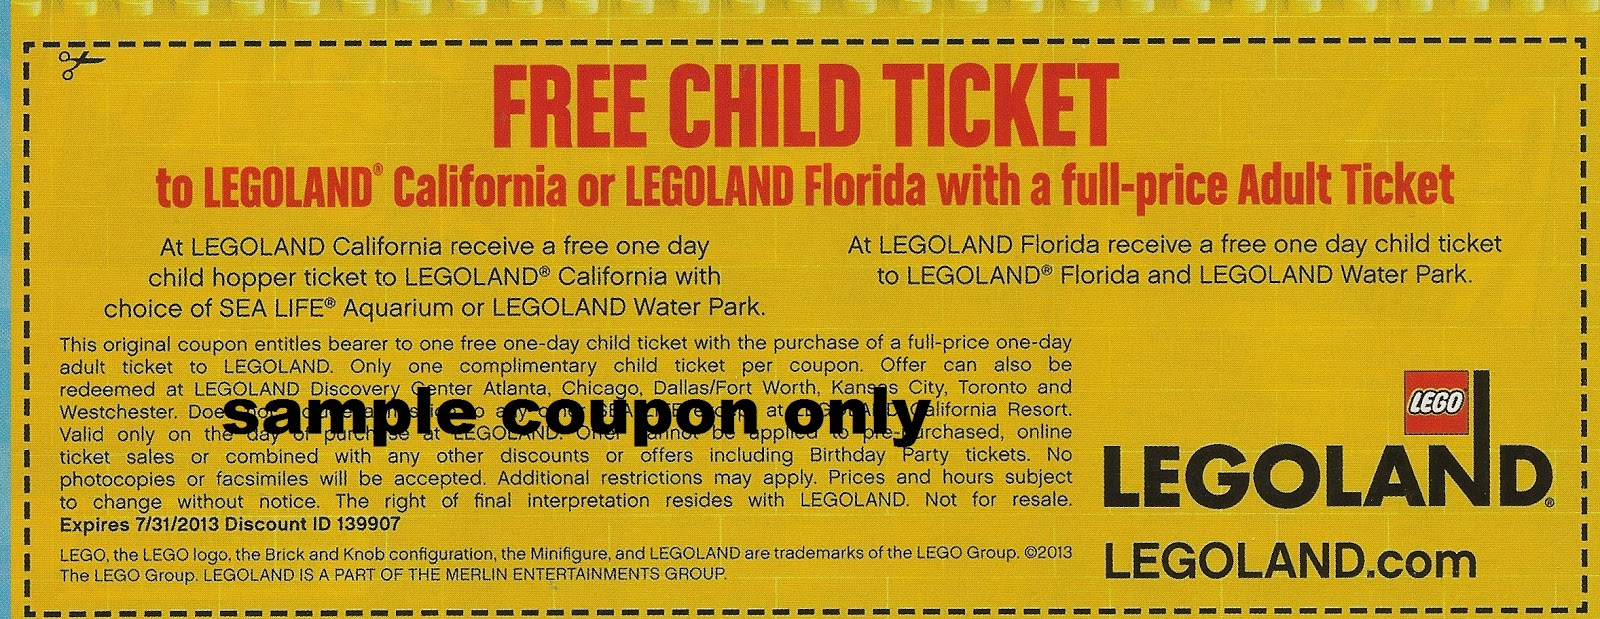 Legoland discount coupon